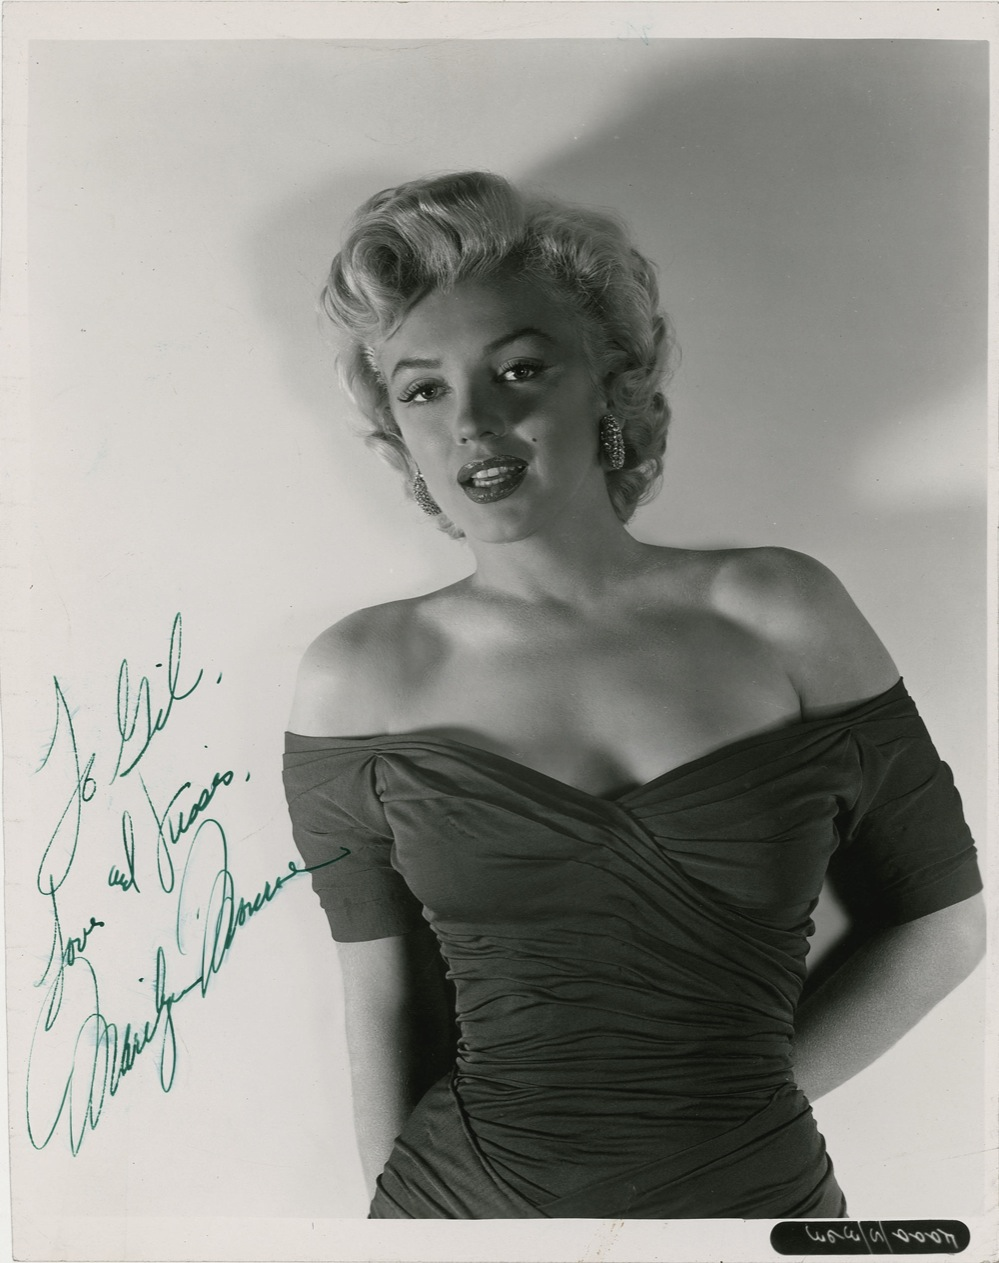 "Marilyn Monroe Autograph One of the Best, Most Classic, Provocative and Sexy Marilyn Monroe In-Her-Prime 8"" x 10"" Signed Photos One Could Hope to Own -- PSA/DNA COA"